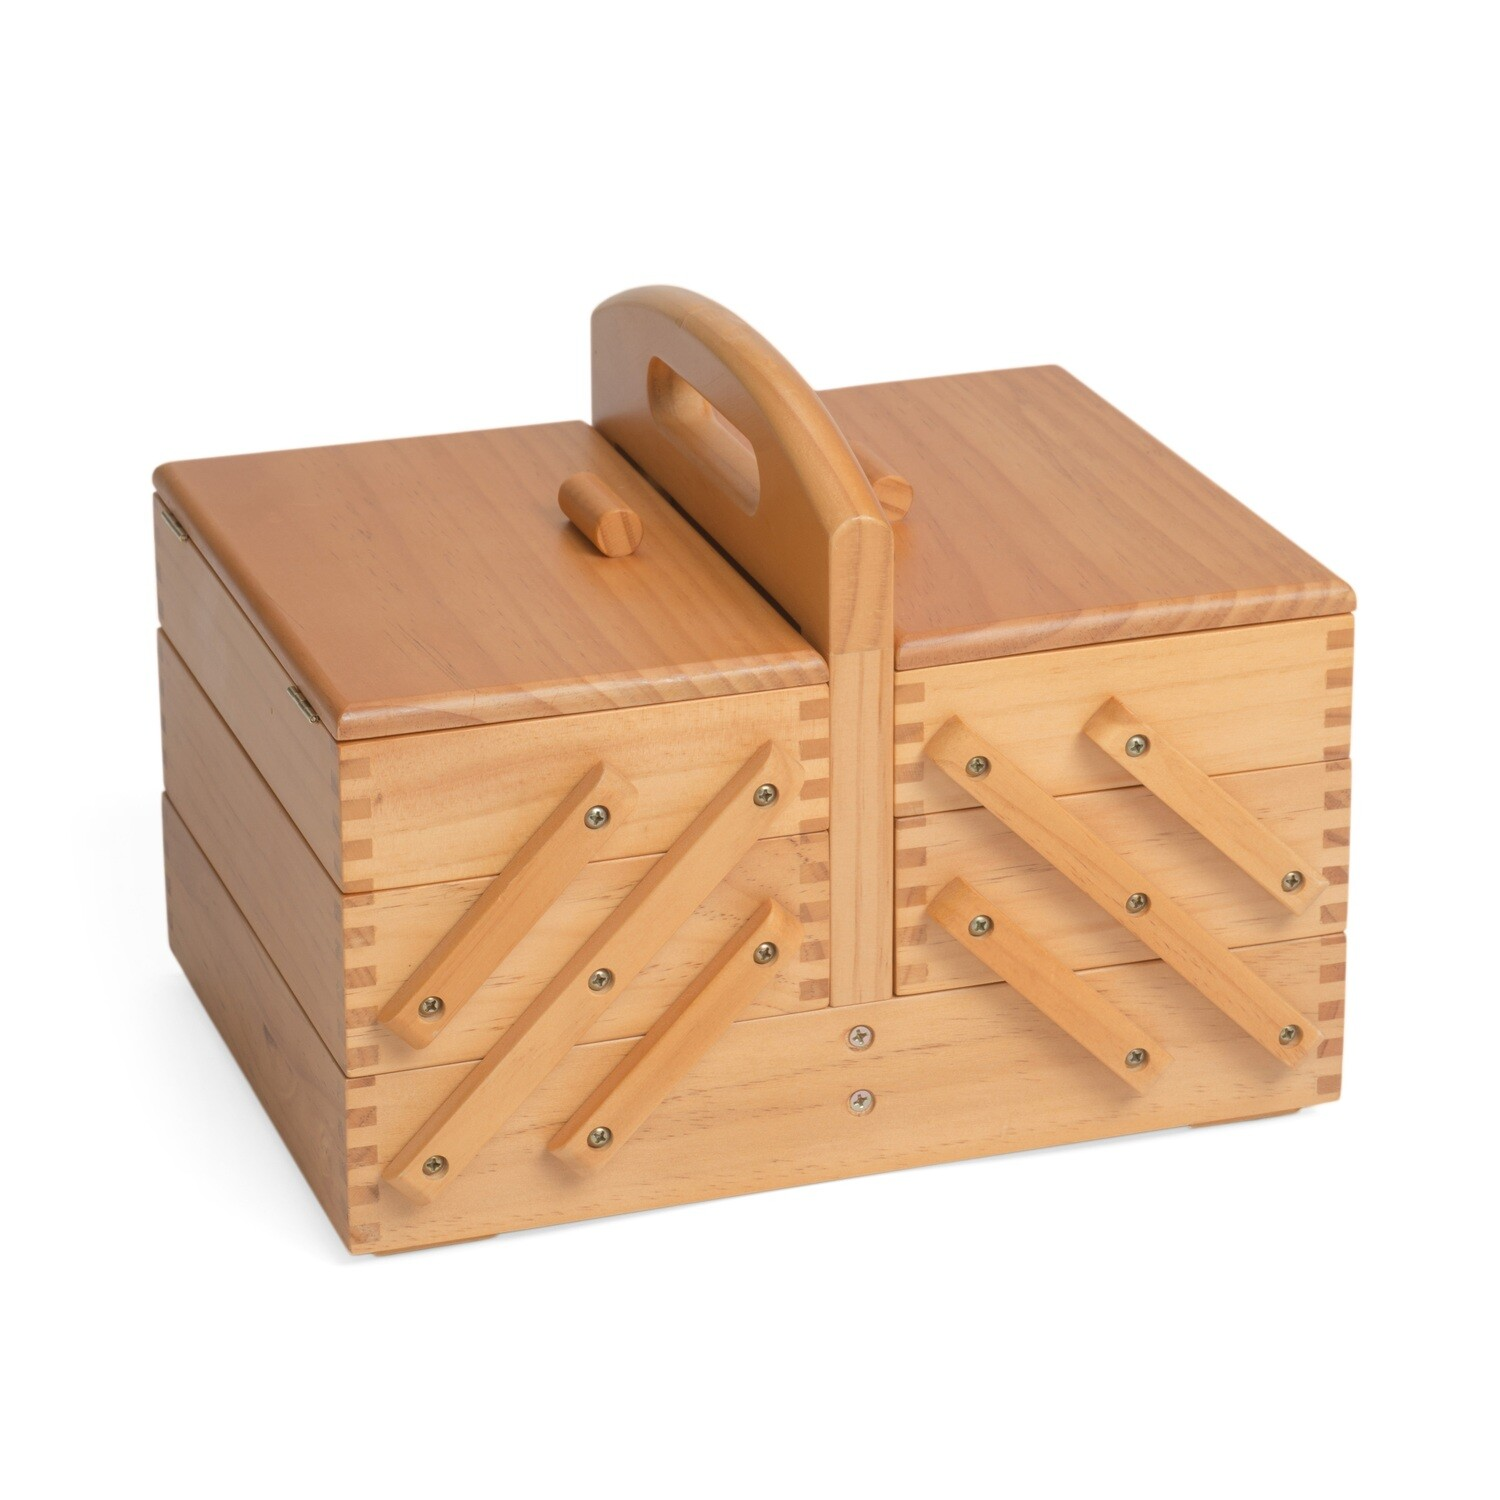 Sewing Box Wood - 3 Tier